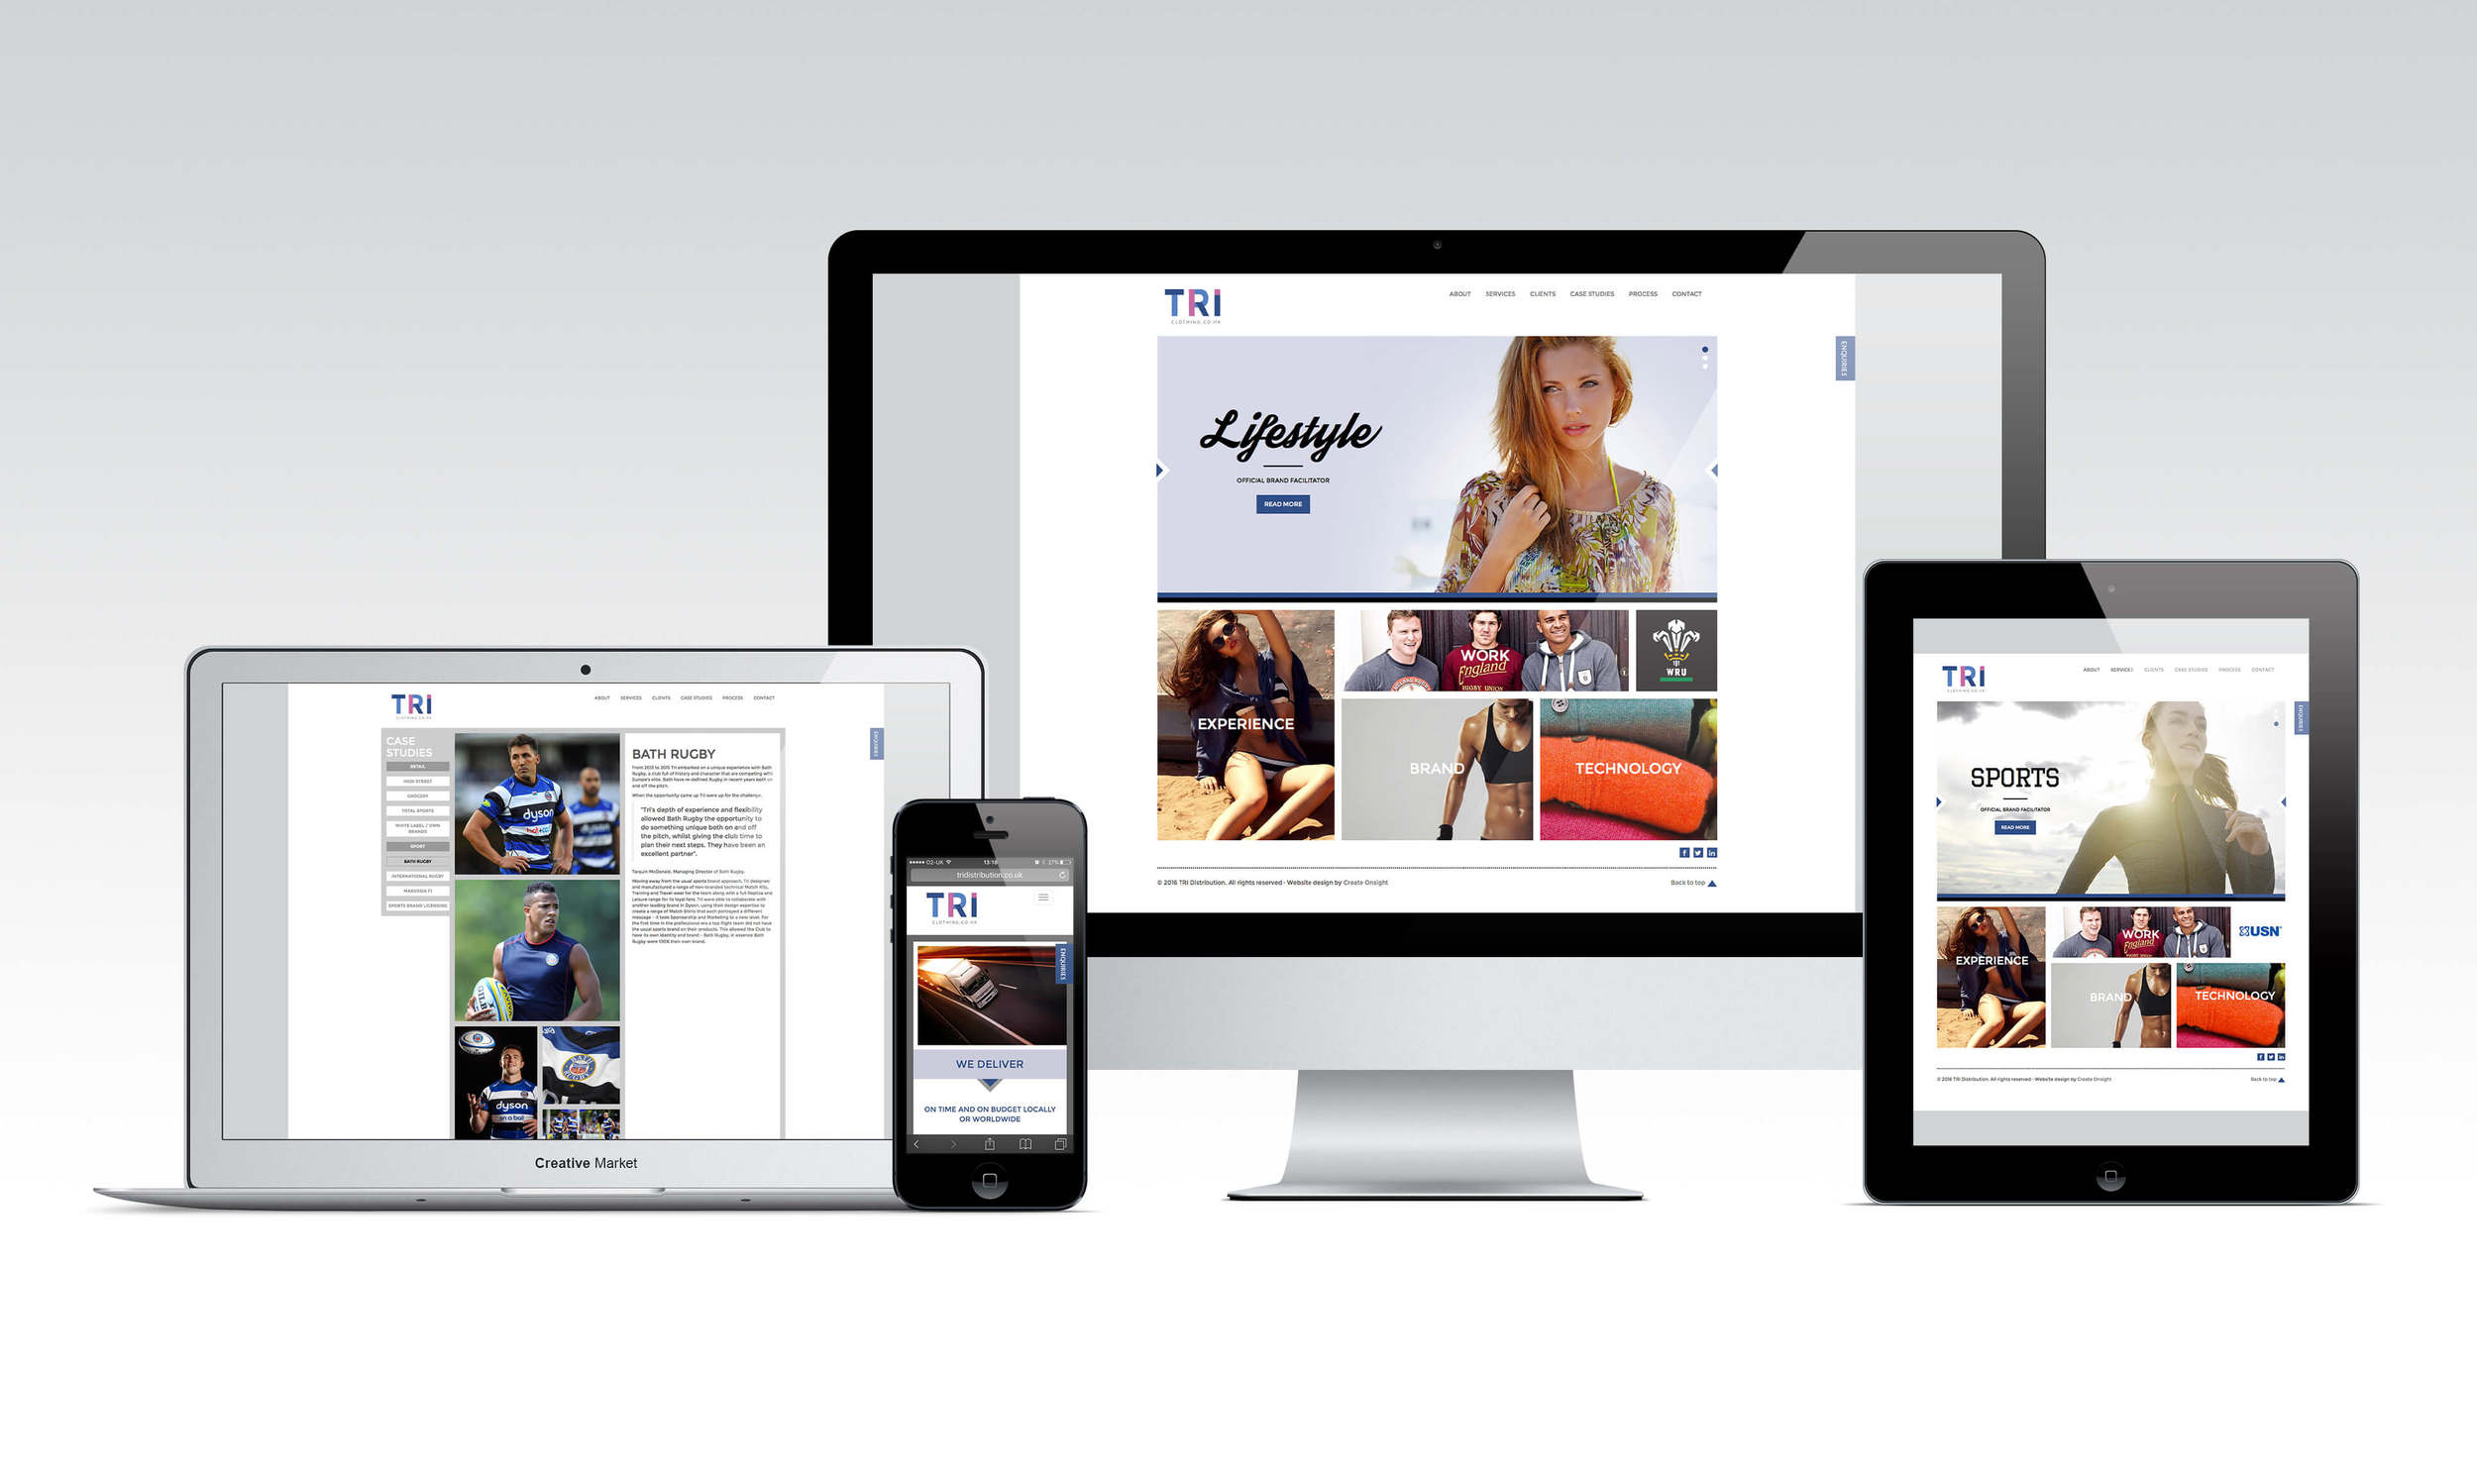 A fully responsive Wordpress website designed in house by Create Onsight for TRI Clothing